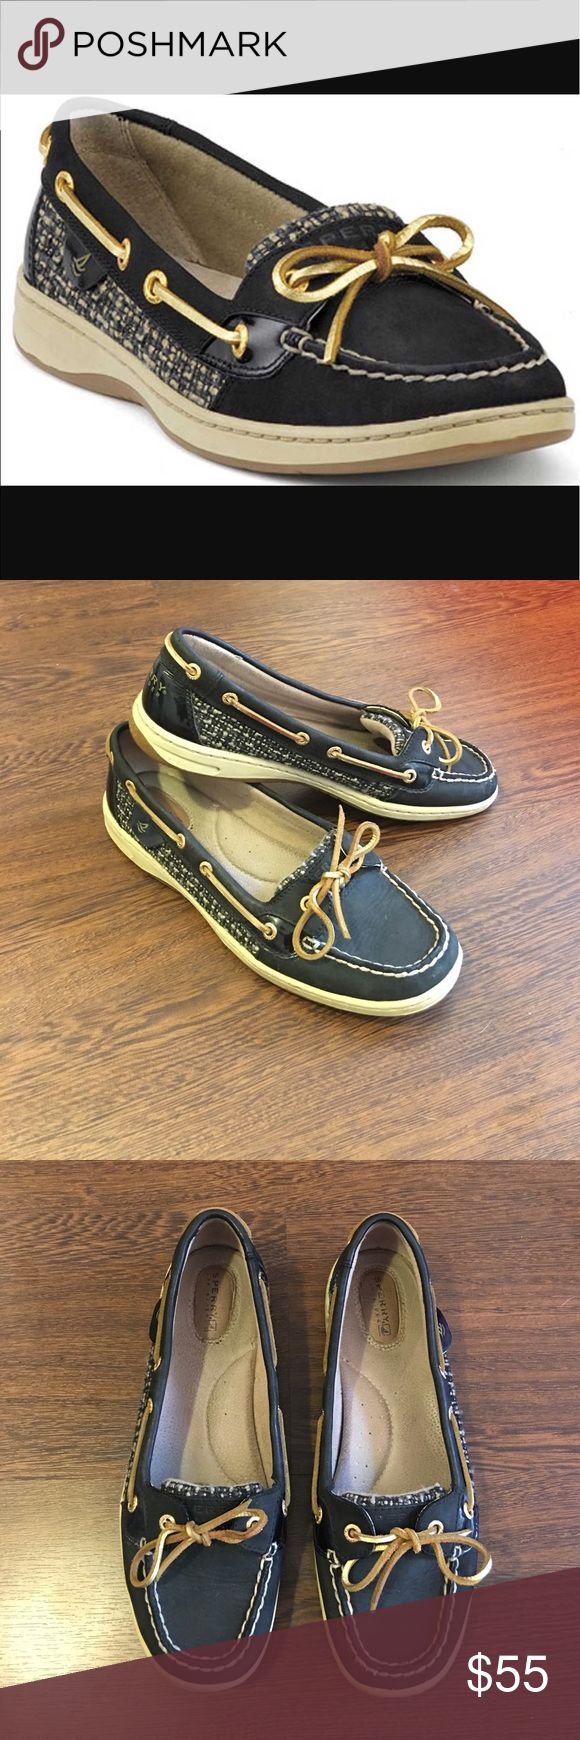 SALE Sperry Top-Sider Black Boucle Angelfish Sperry Top-Sider Black Boucle Angelfish Boat Shoes. Women's Size 9.5 Deck Slip On Shoes. Perfect Spring And Summer Time Shoes. Lightly Worn. In Great Pre Owned Condition. Sperry Top-Sider Shoes